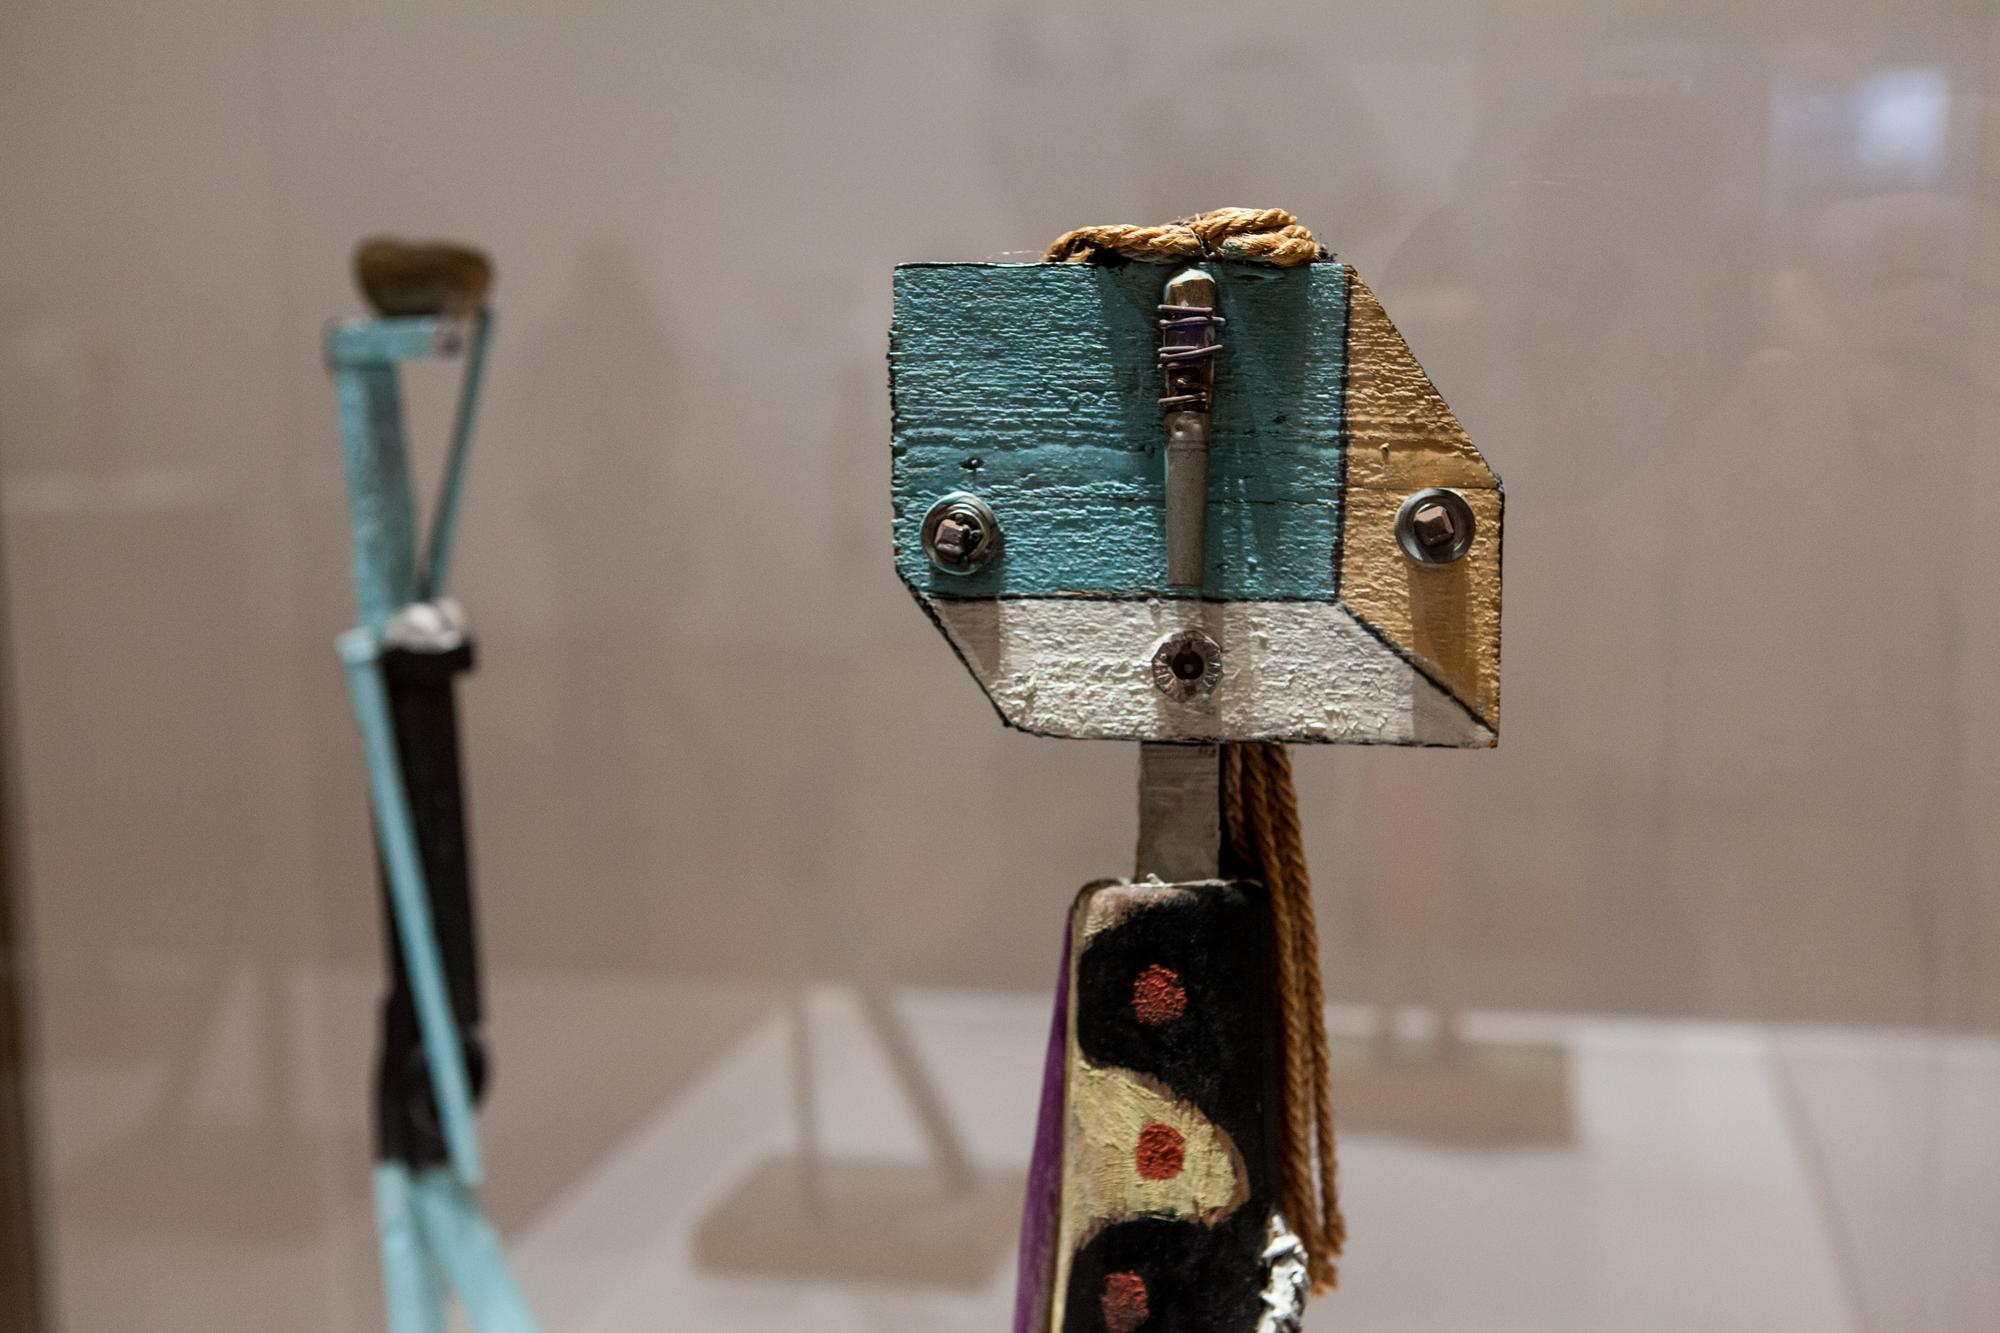 moma-picasso-sculpture-preview-25.jpg